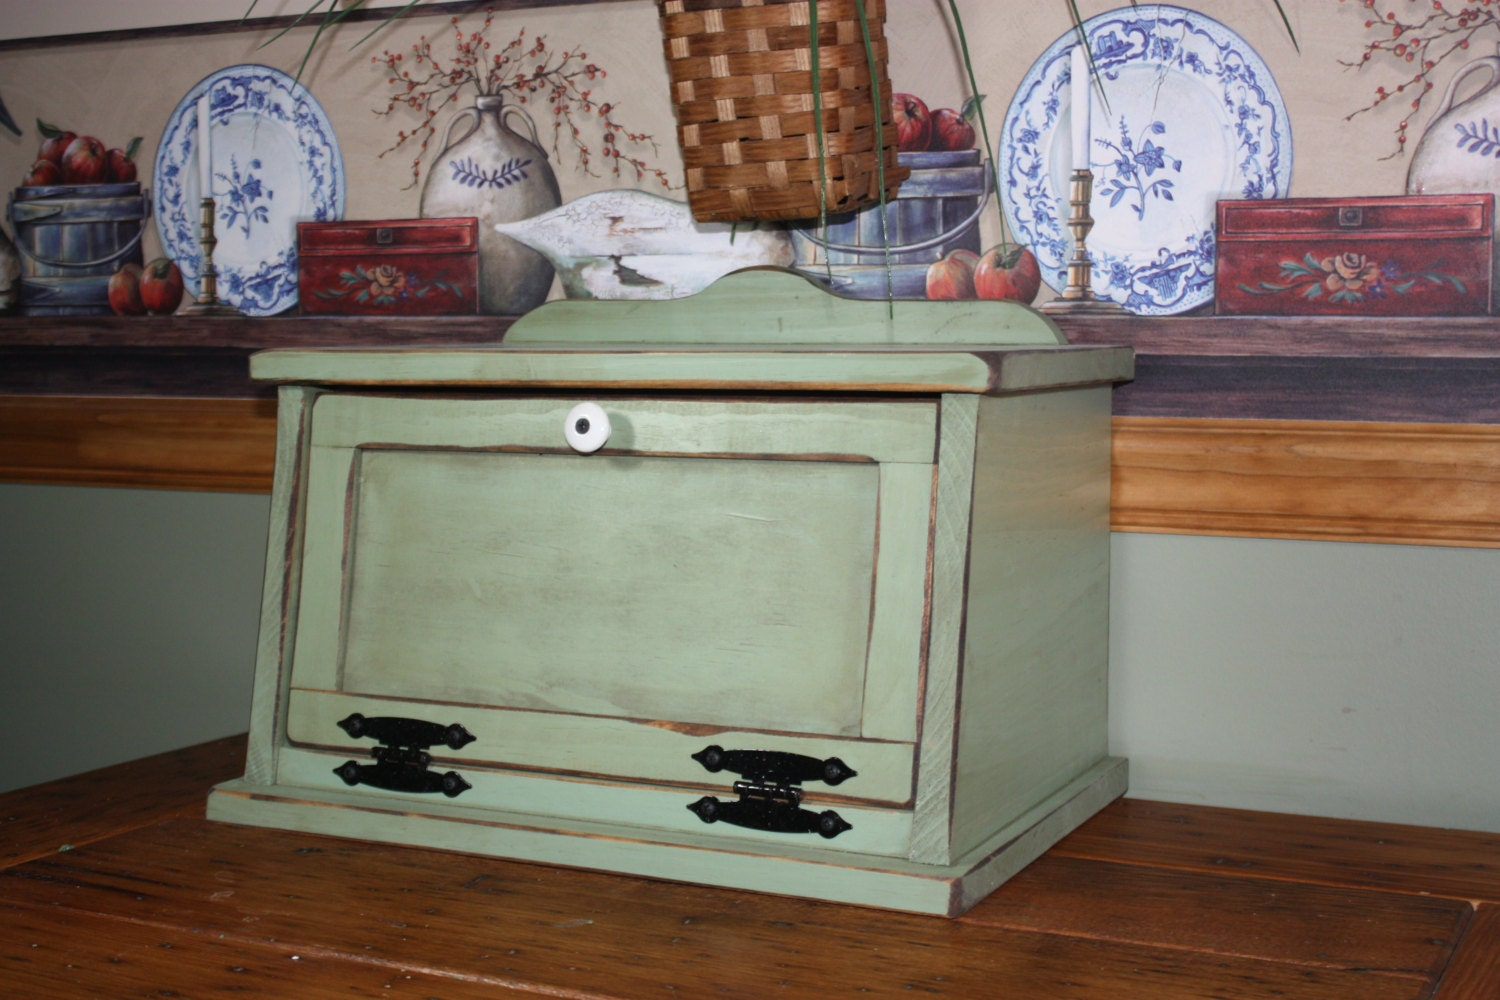 Shabby Chic Country Kitchen Bread Box Free Shipping Shabby Chic Wood Kitchen